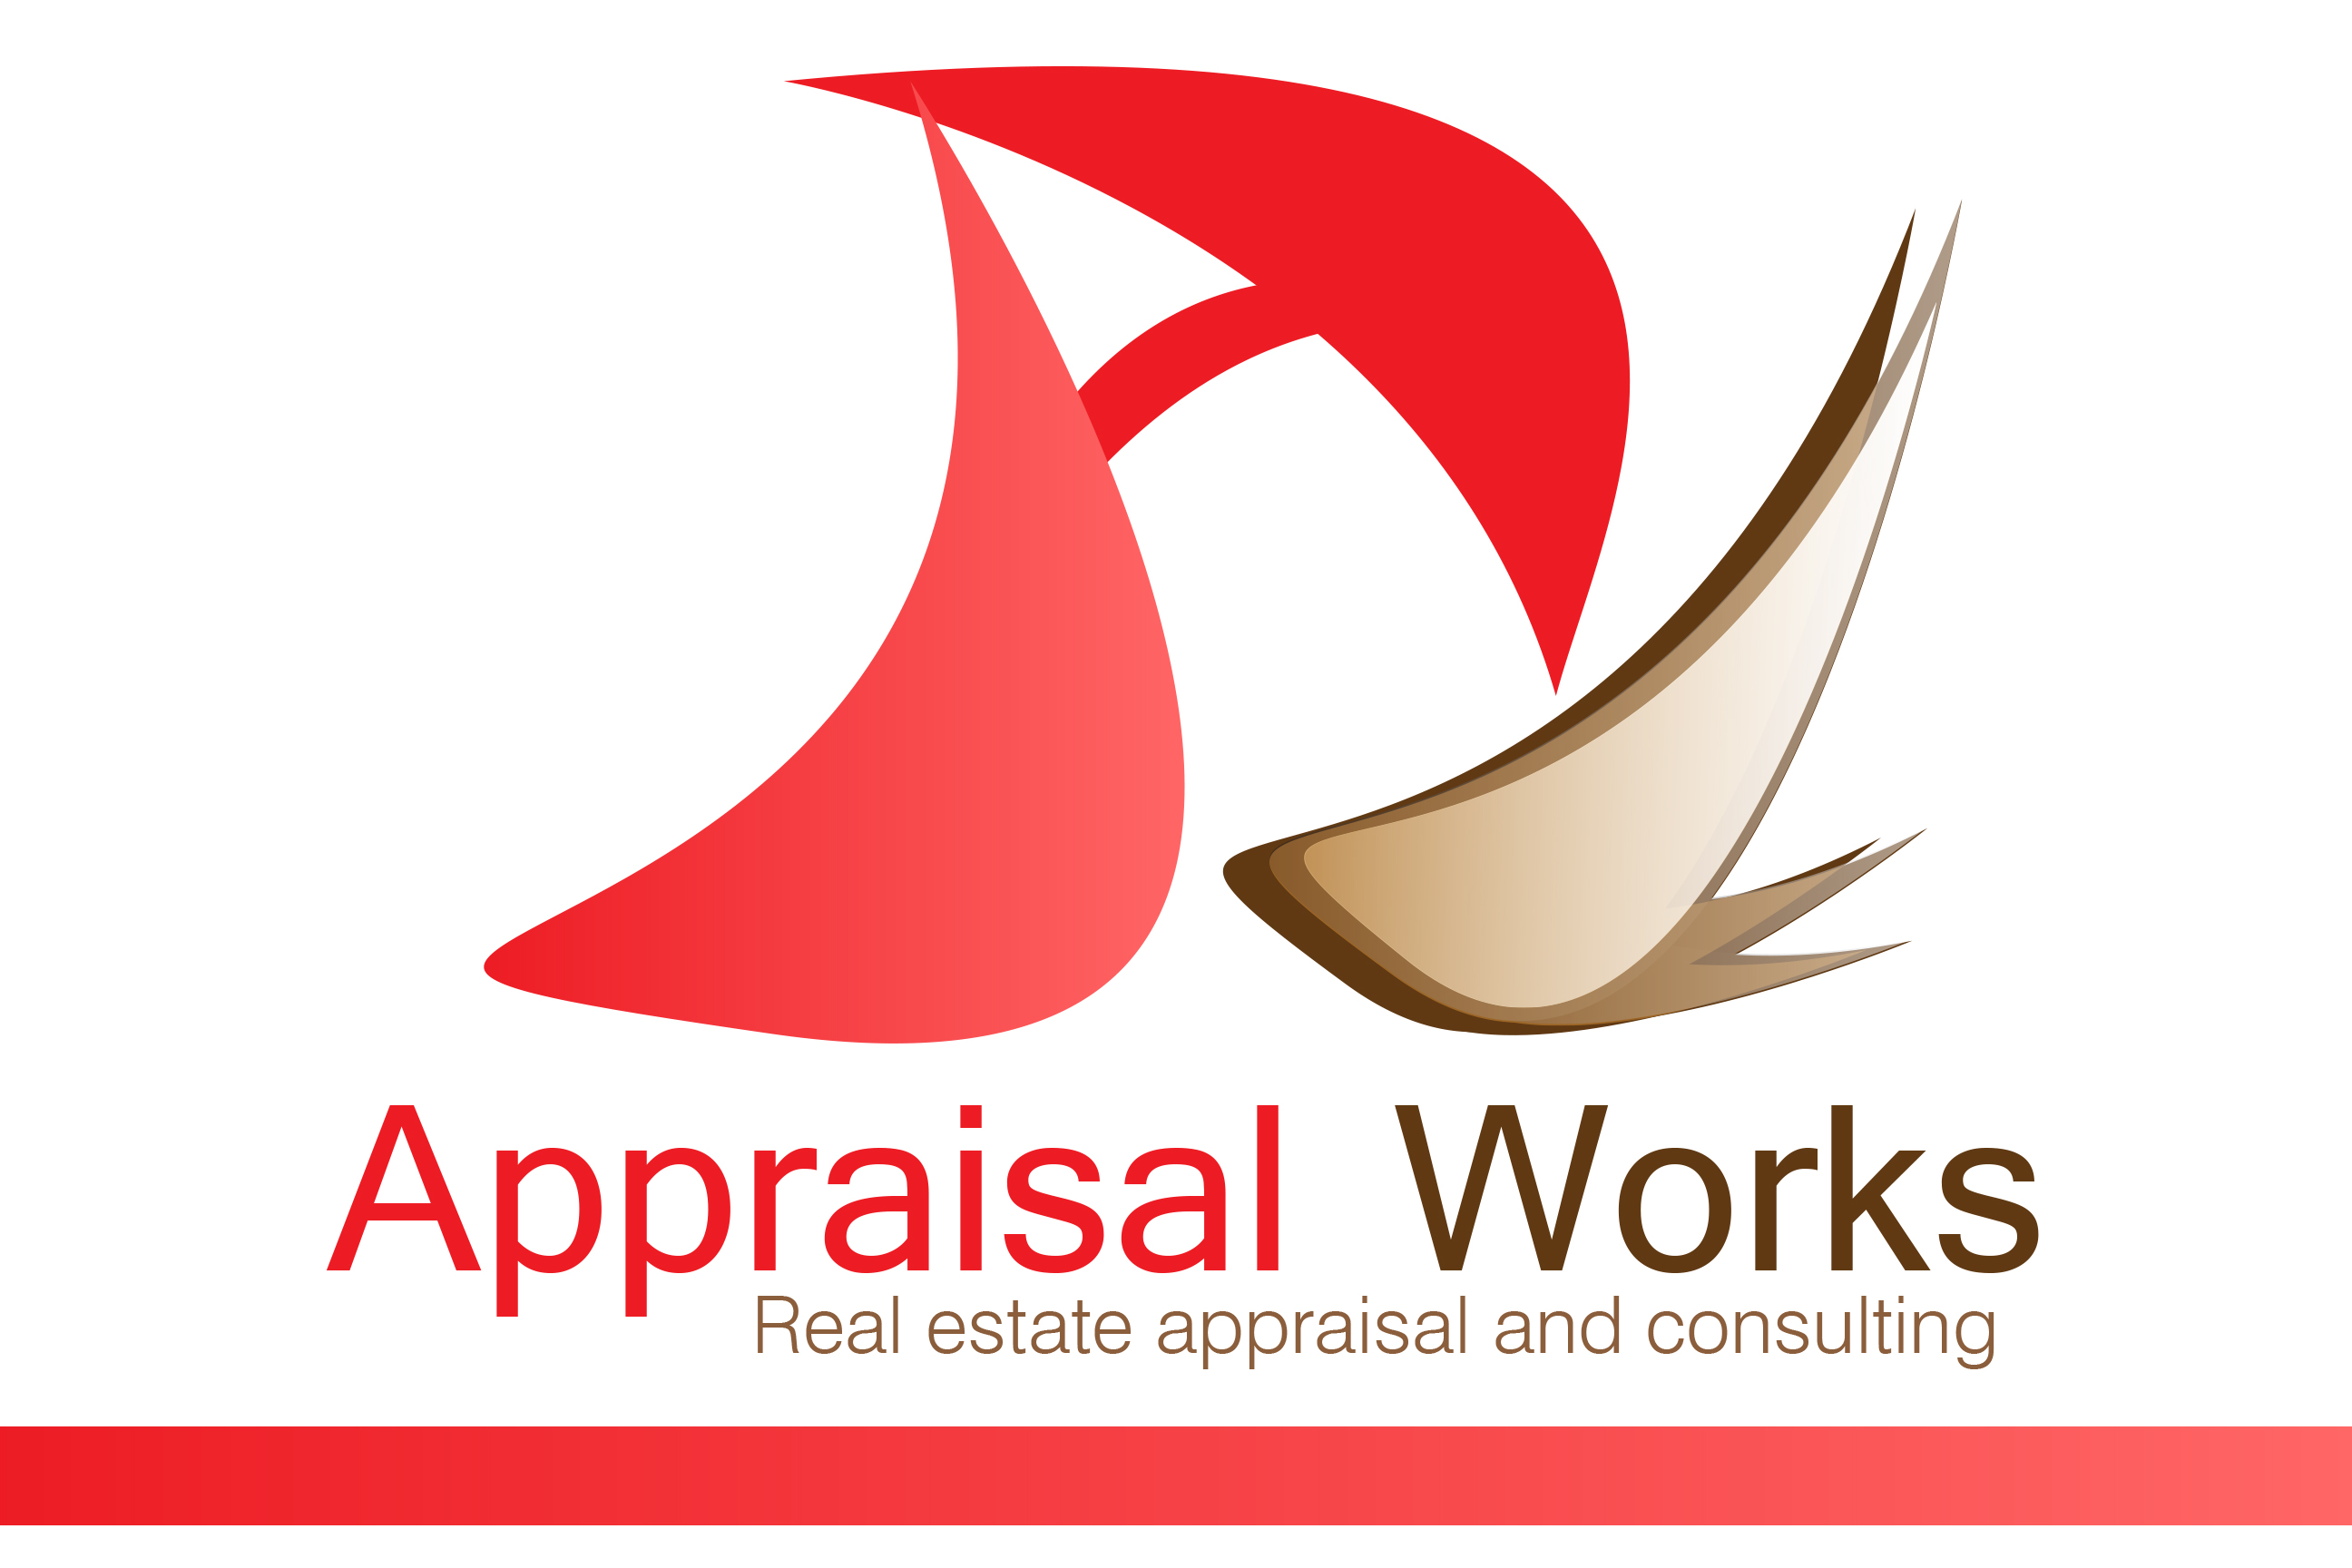 Logo Design by Leonard Anthony Alloso - Entry No. 217 in the Logo Design Contest Appraisal Works Logo Design.